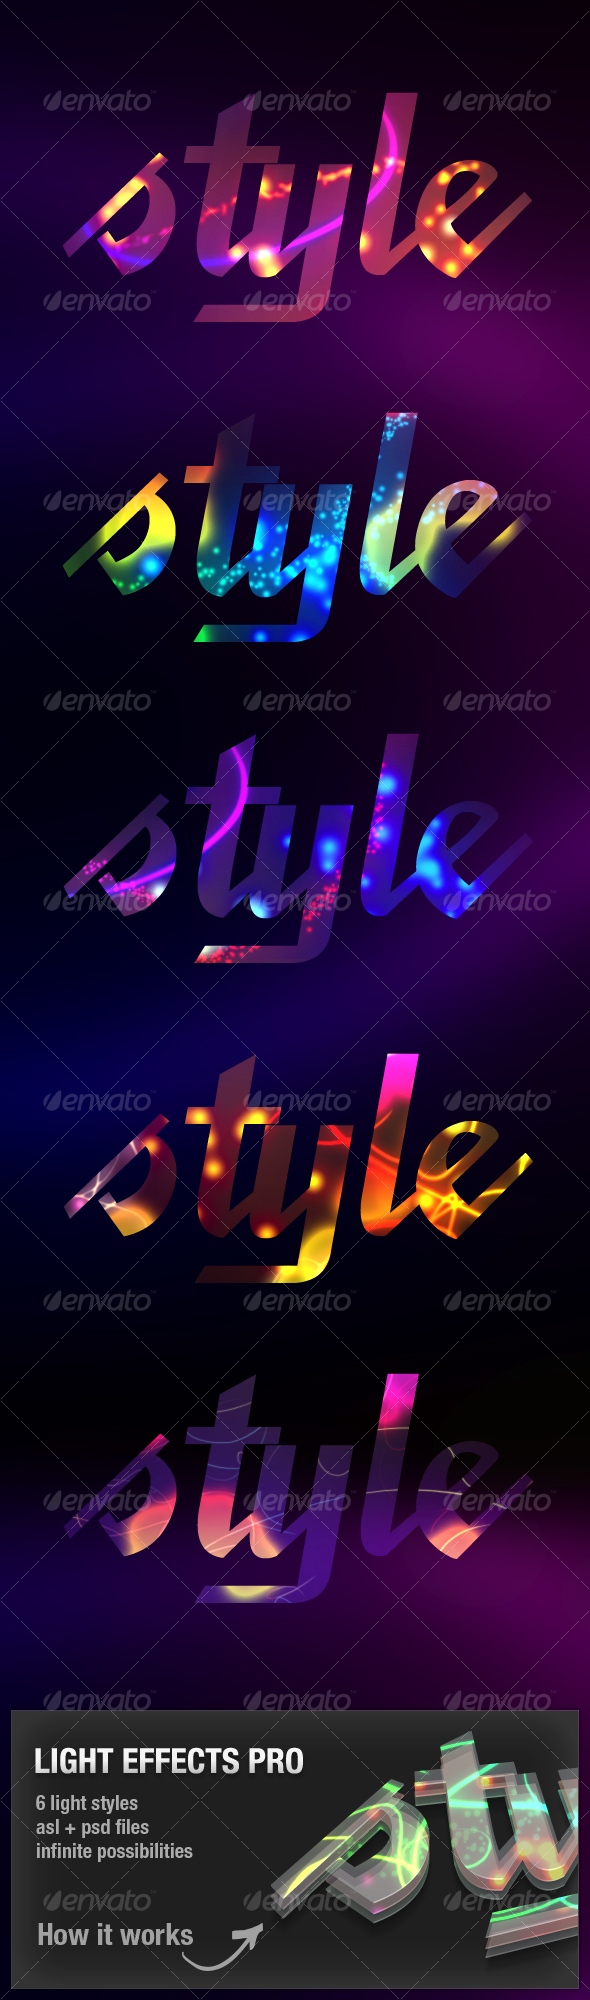 GraphicRiver Ligth Effects Pro 114077